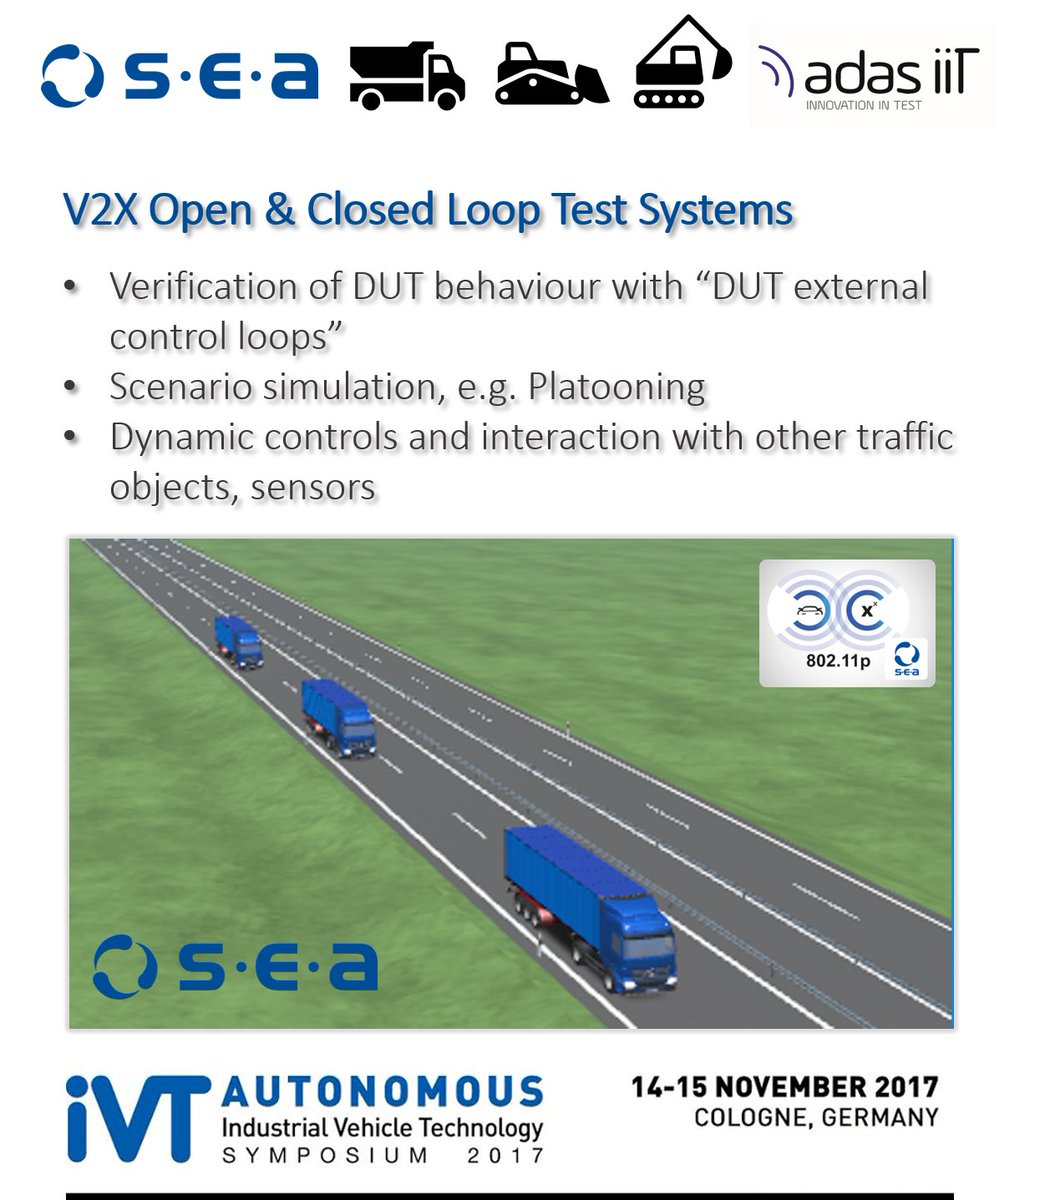 Save the date to visit our exhibition at #iVT &amp; listen to our presentation Day 2 at 15:30  https:// lnkd.in/eunsvaY  &nbsp;    http://www. adas-iit.com / &nbsp;  <br>http://pic.twitter.com/fx9B6clseN